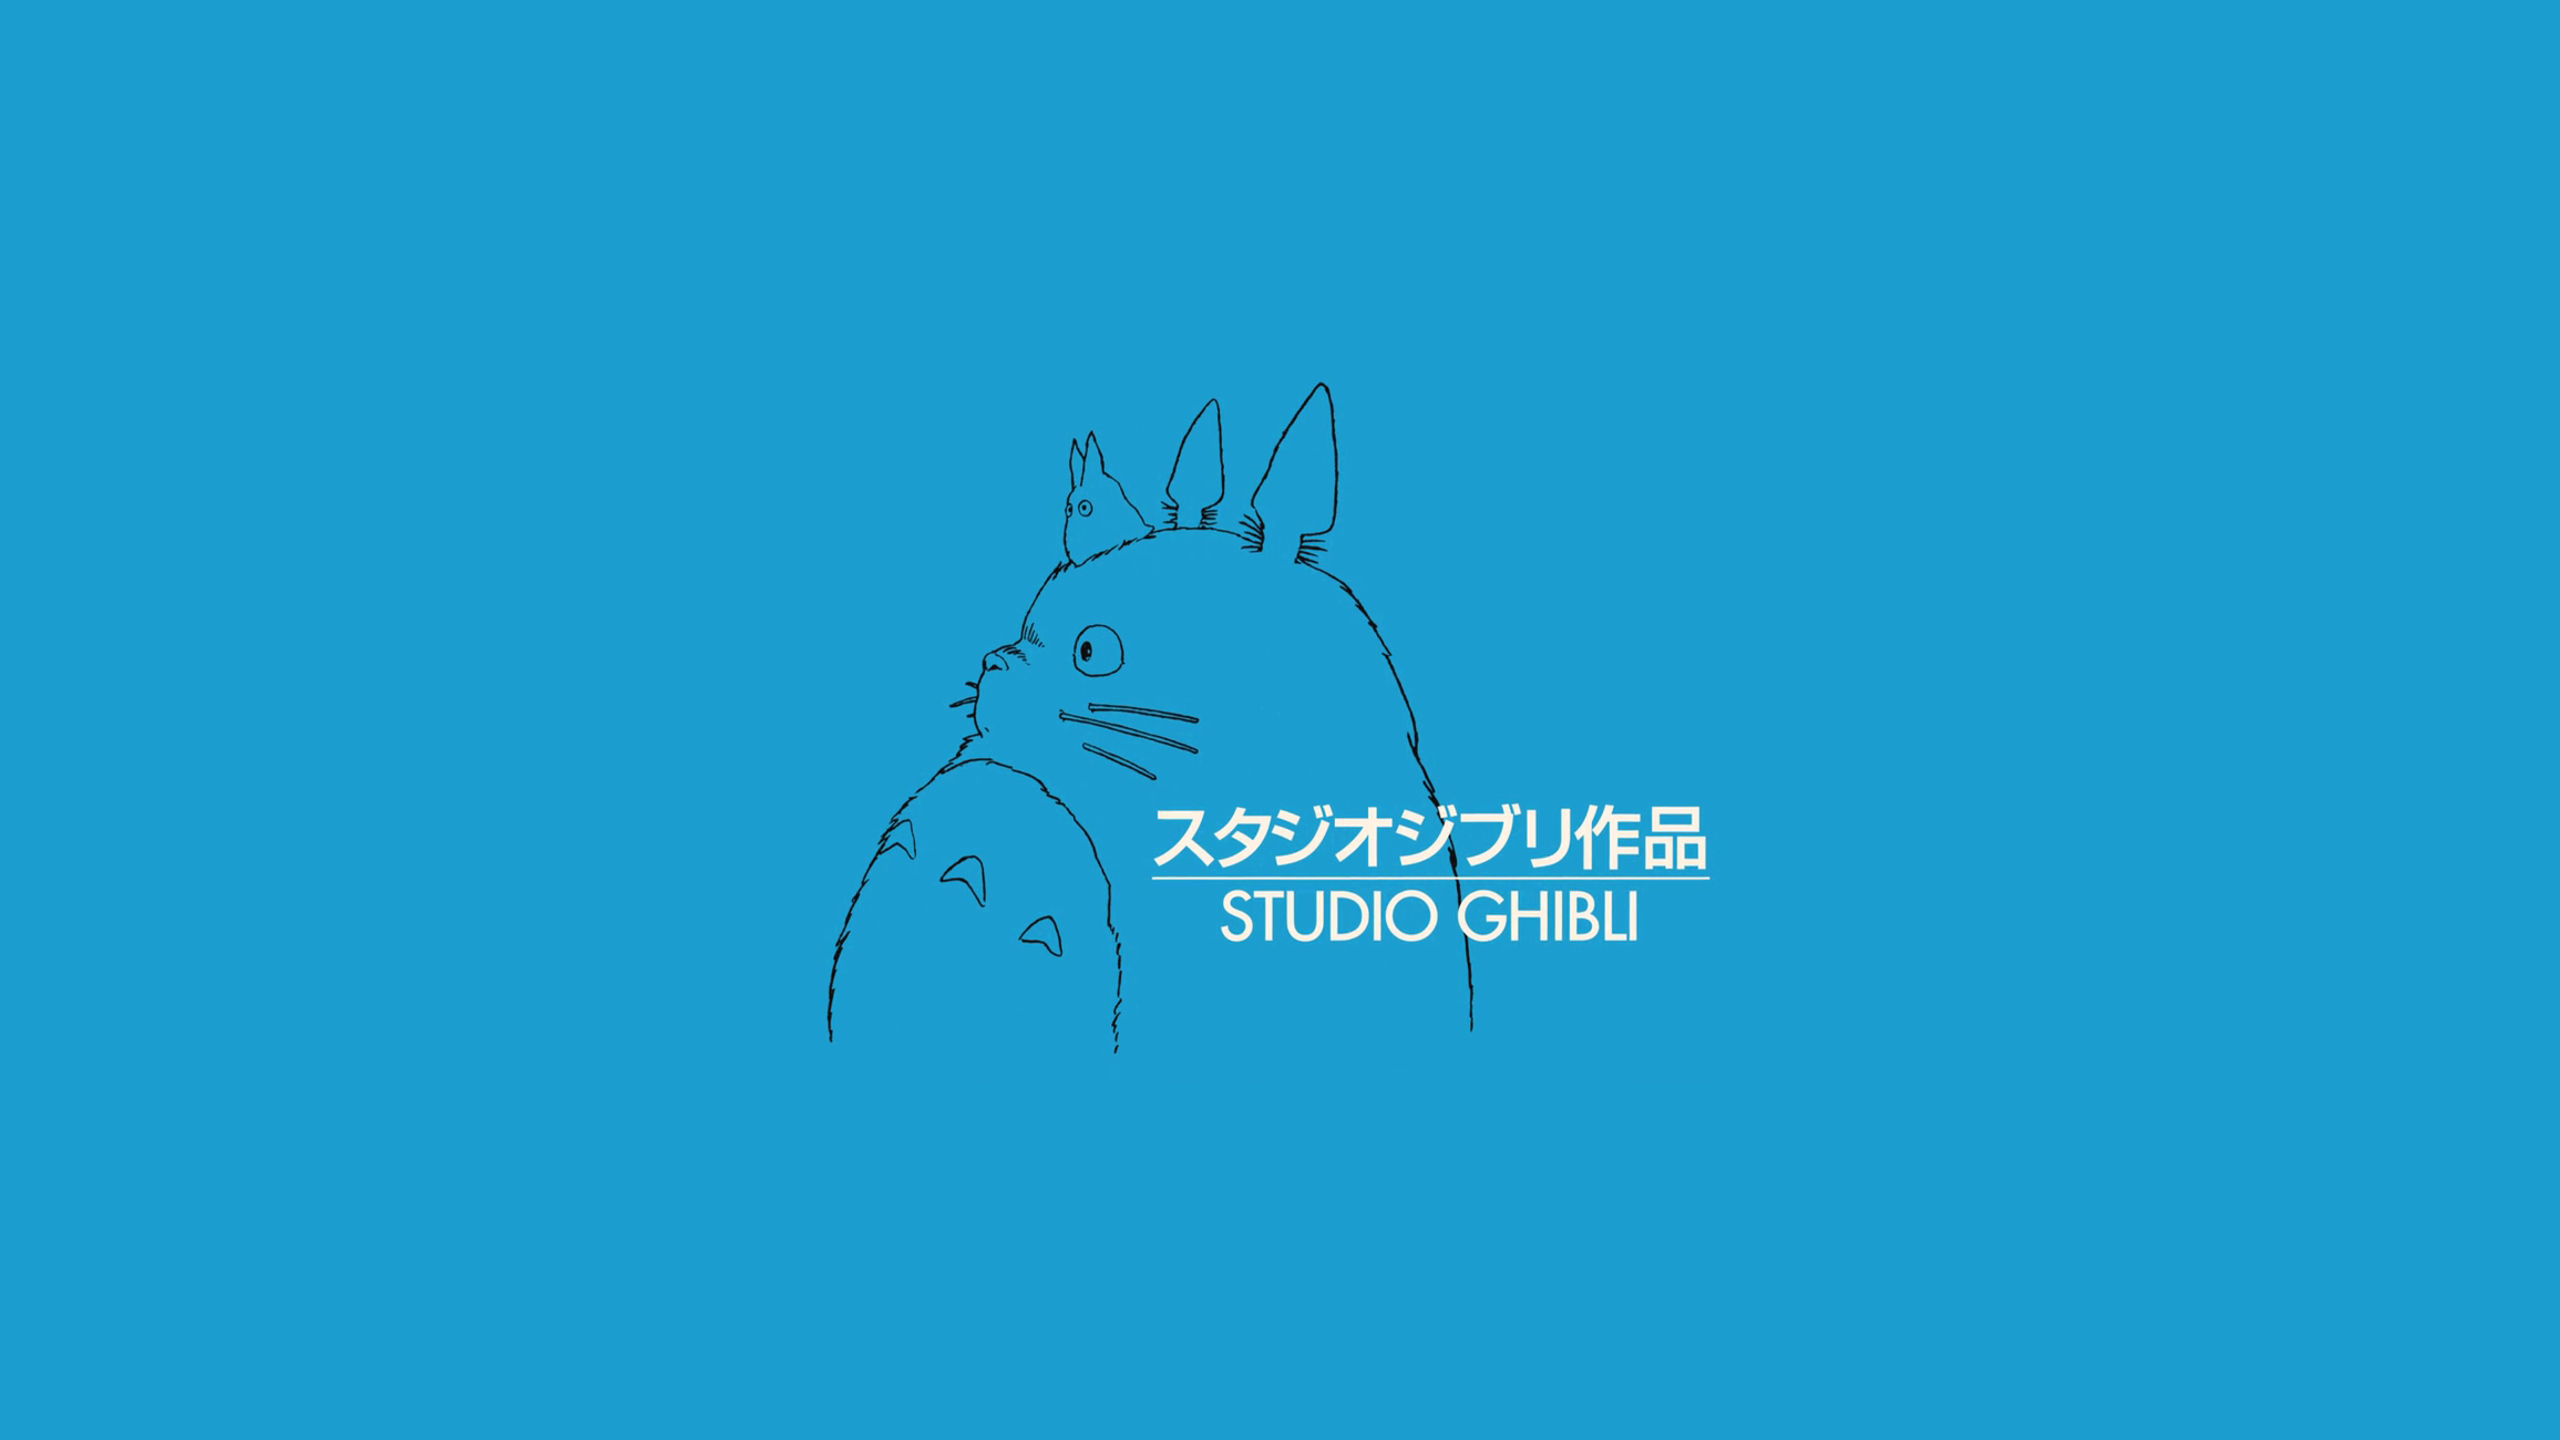 Studio Ghibli Wallpaper Desktop Images crazygalleryinfo 2560x1440